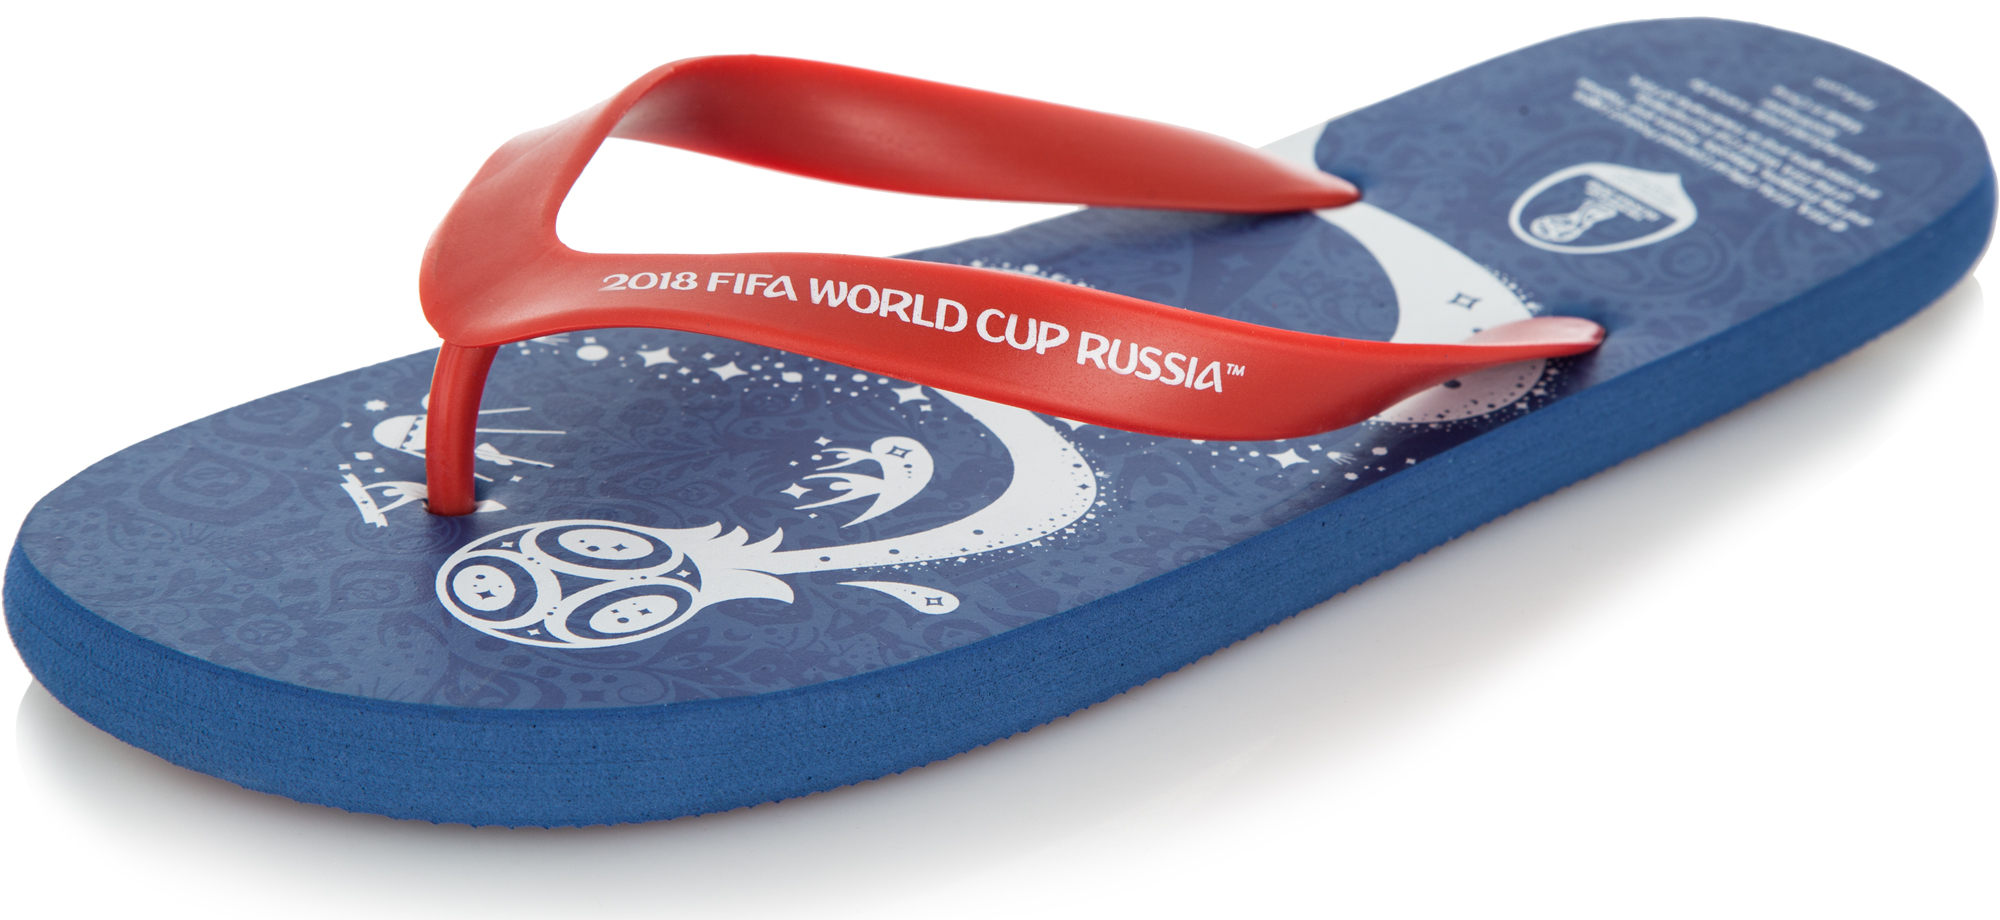 no brand Шлепанцы мужские 2018 FIFA World Cup Russia™ Fifa Energy